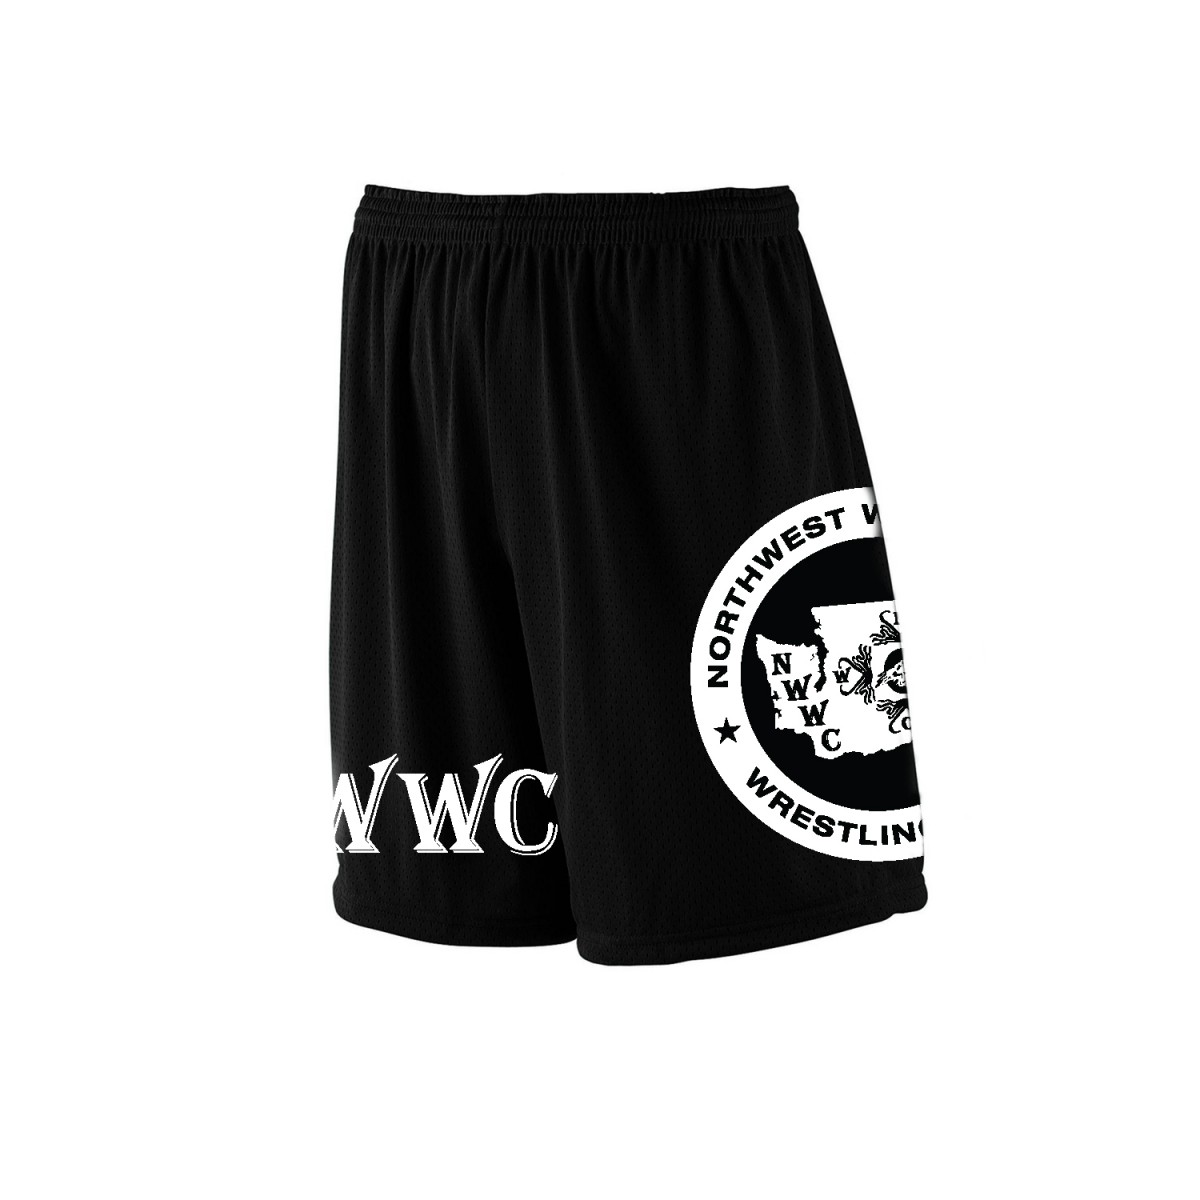 NWWC Black Shorts White Logo-Black-L